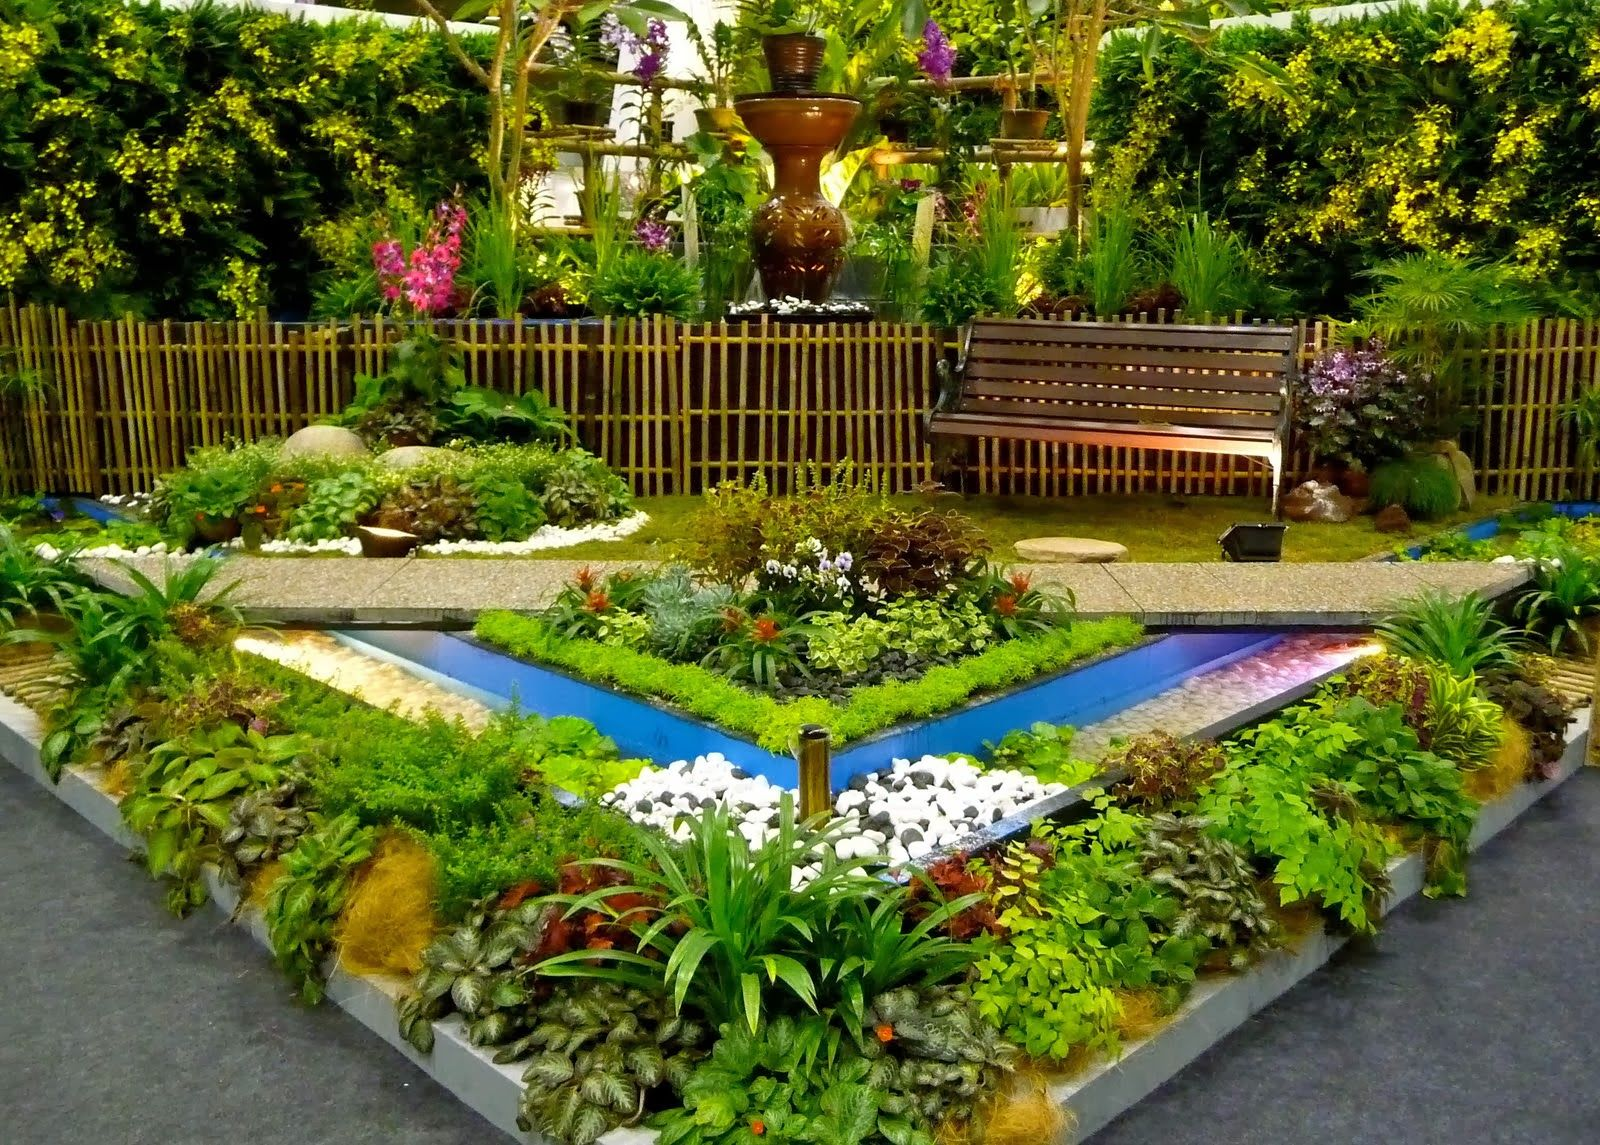 Best landscaping ideas i have ever seen wow design for Small garden design pictures gallery